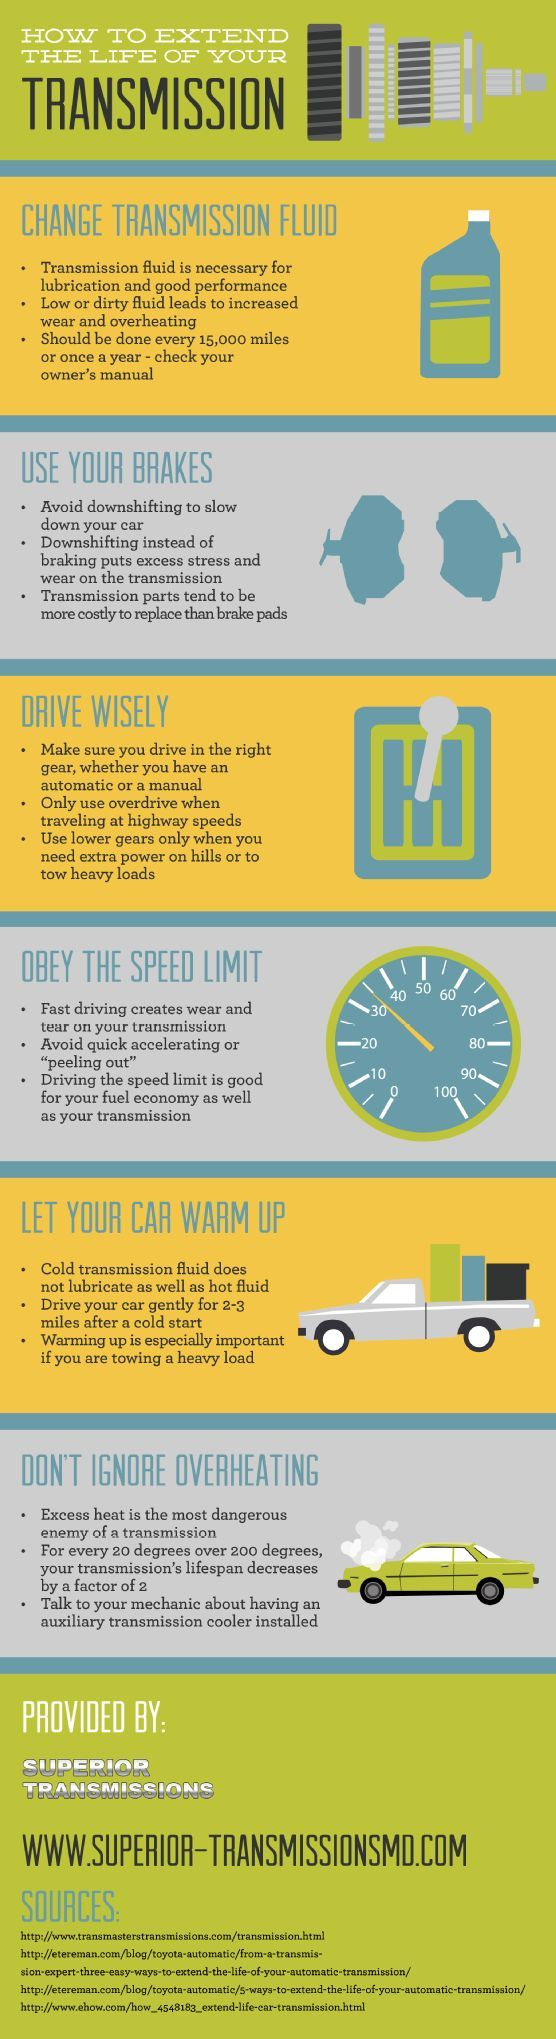 Braking instead of downshifting to slow down the car helps maintain the transmission and extend its life. Learn more about how to treat the transmission right in this infographic a transmission repair shop in Washington D.C.